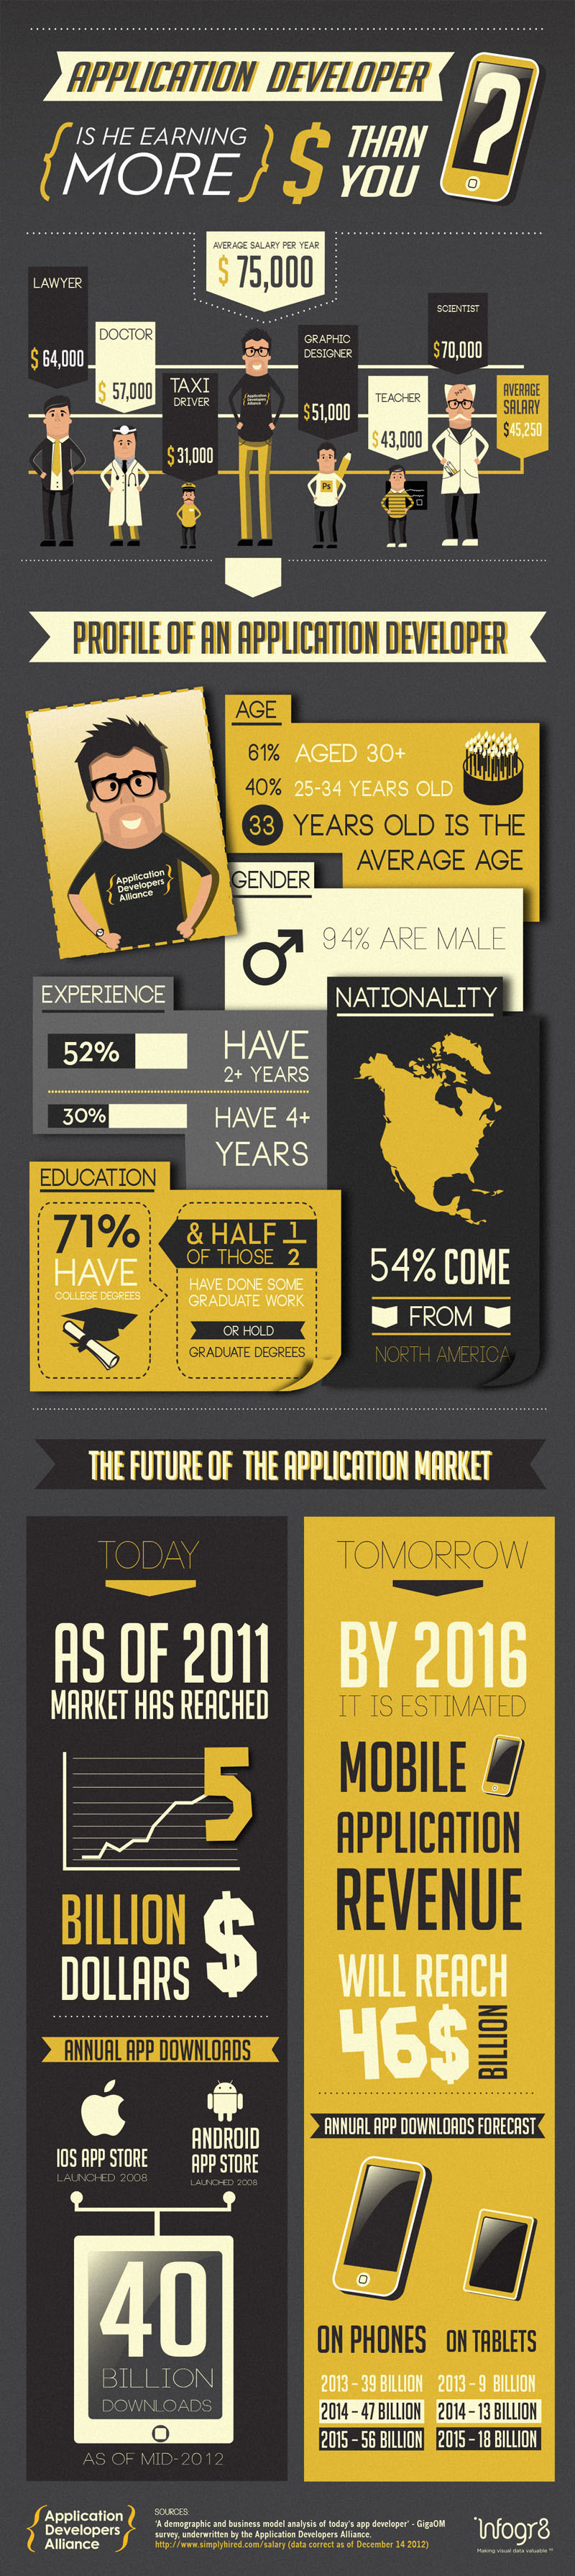 APPLICATION DEVELOPERS ALLIANCE INFOGRAPHIC